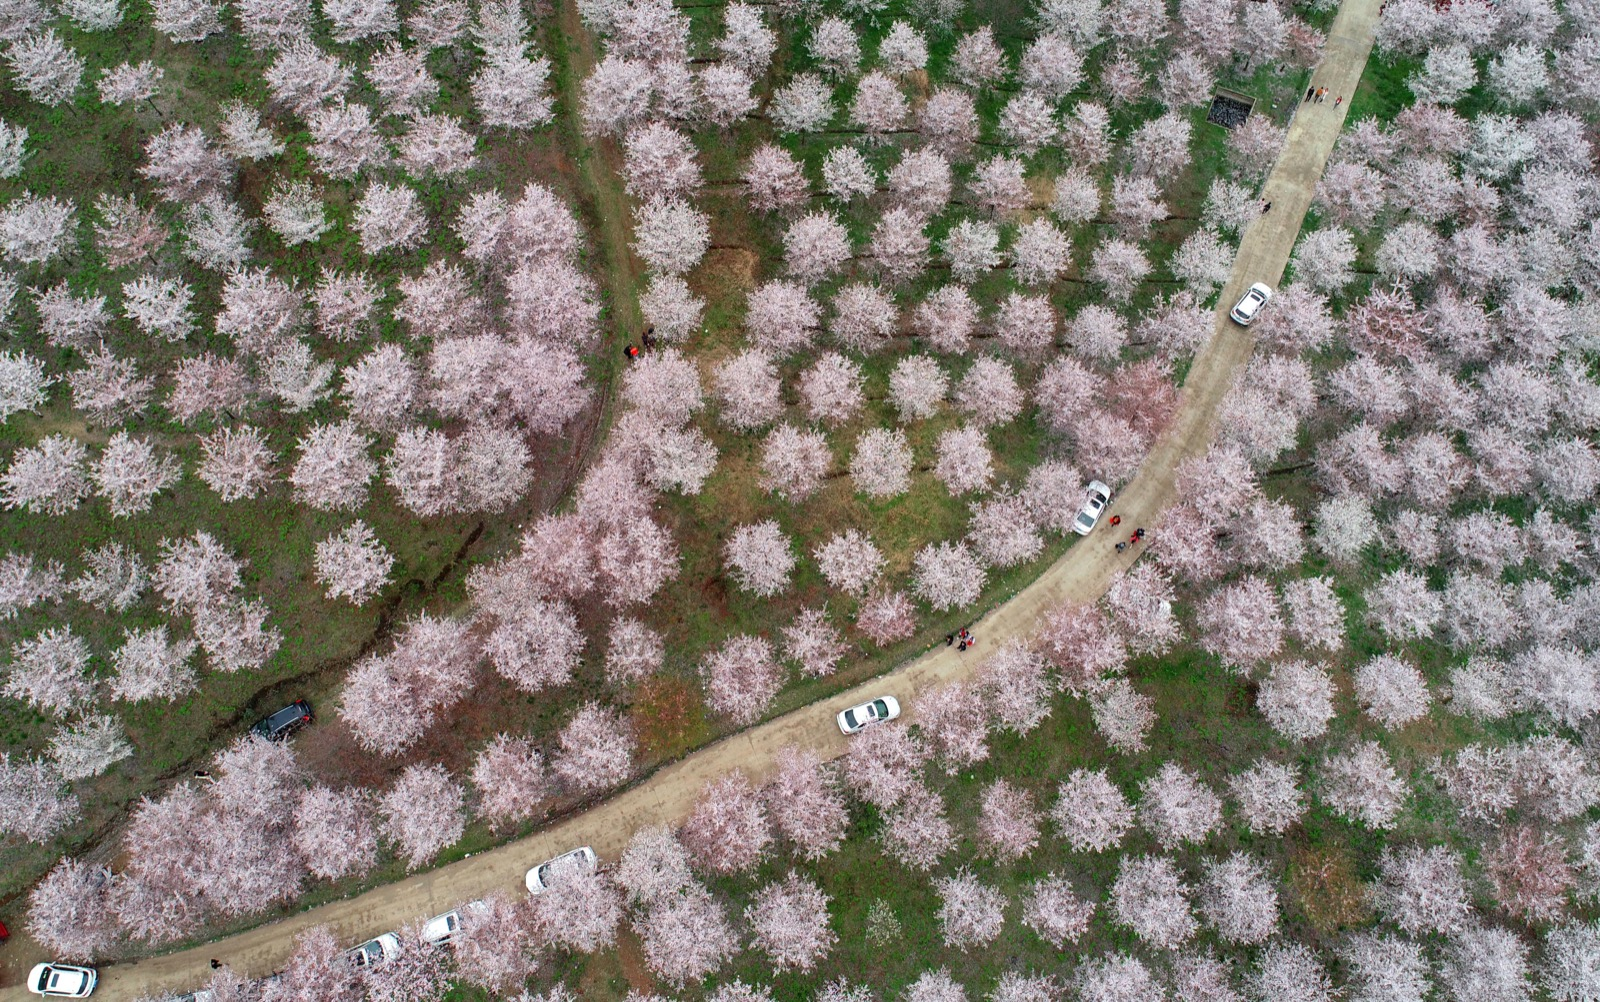 Planet Lockdown, Pictures of the Week and Cherry Blossom Season - cover